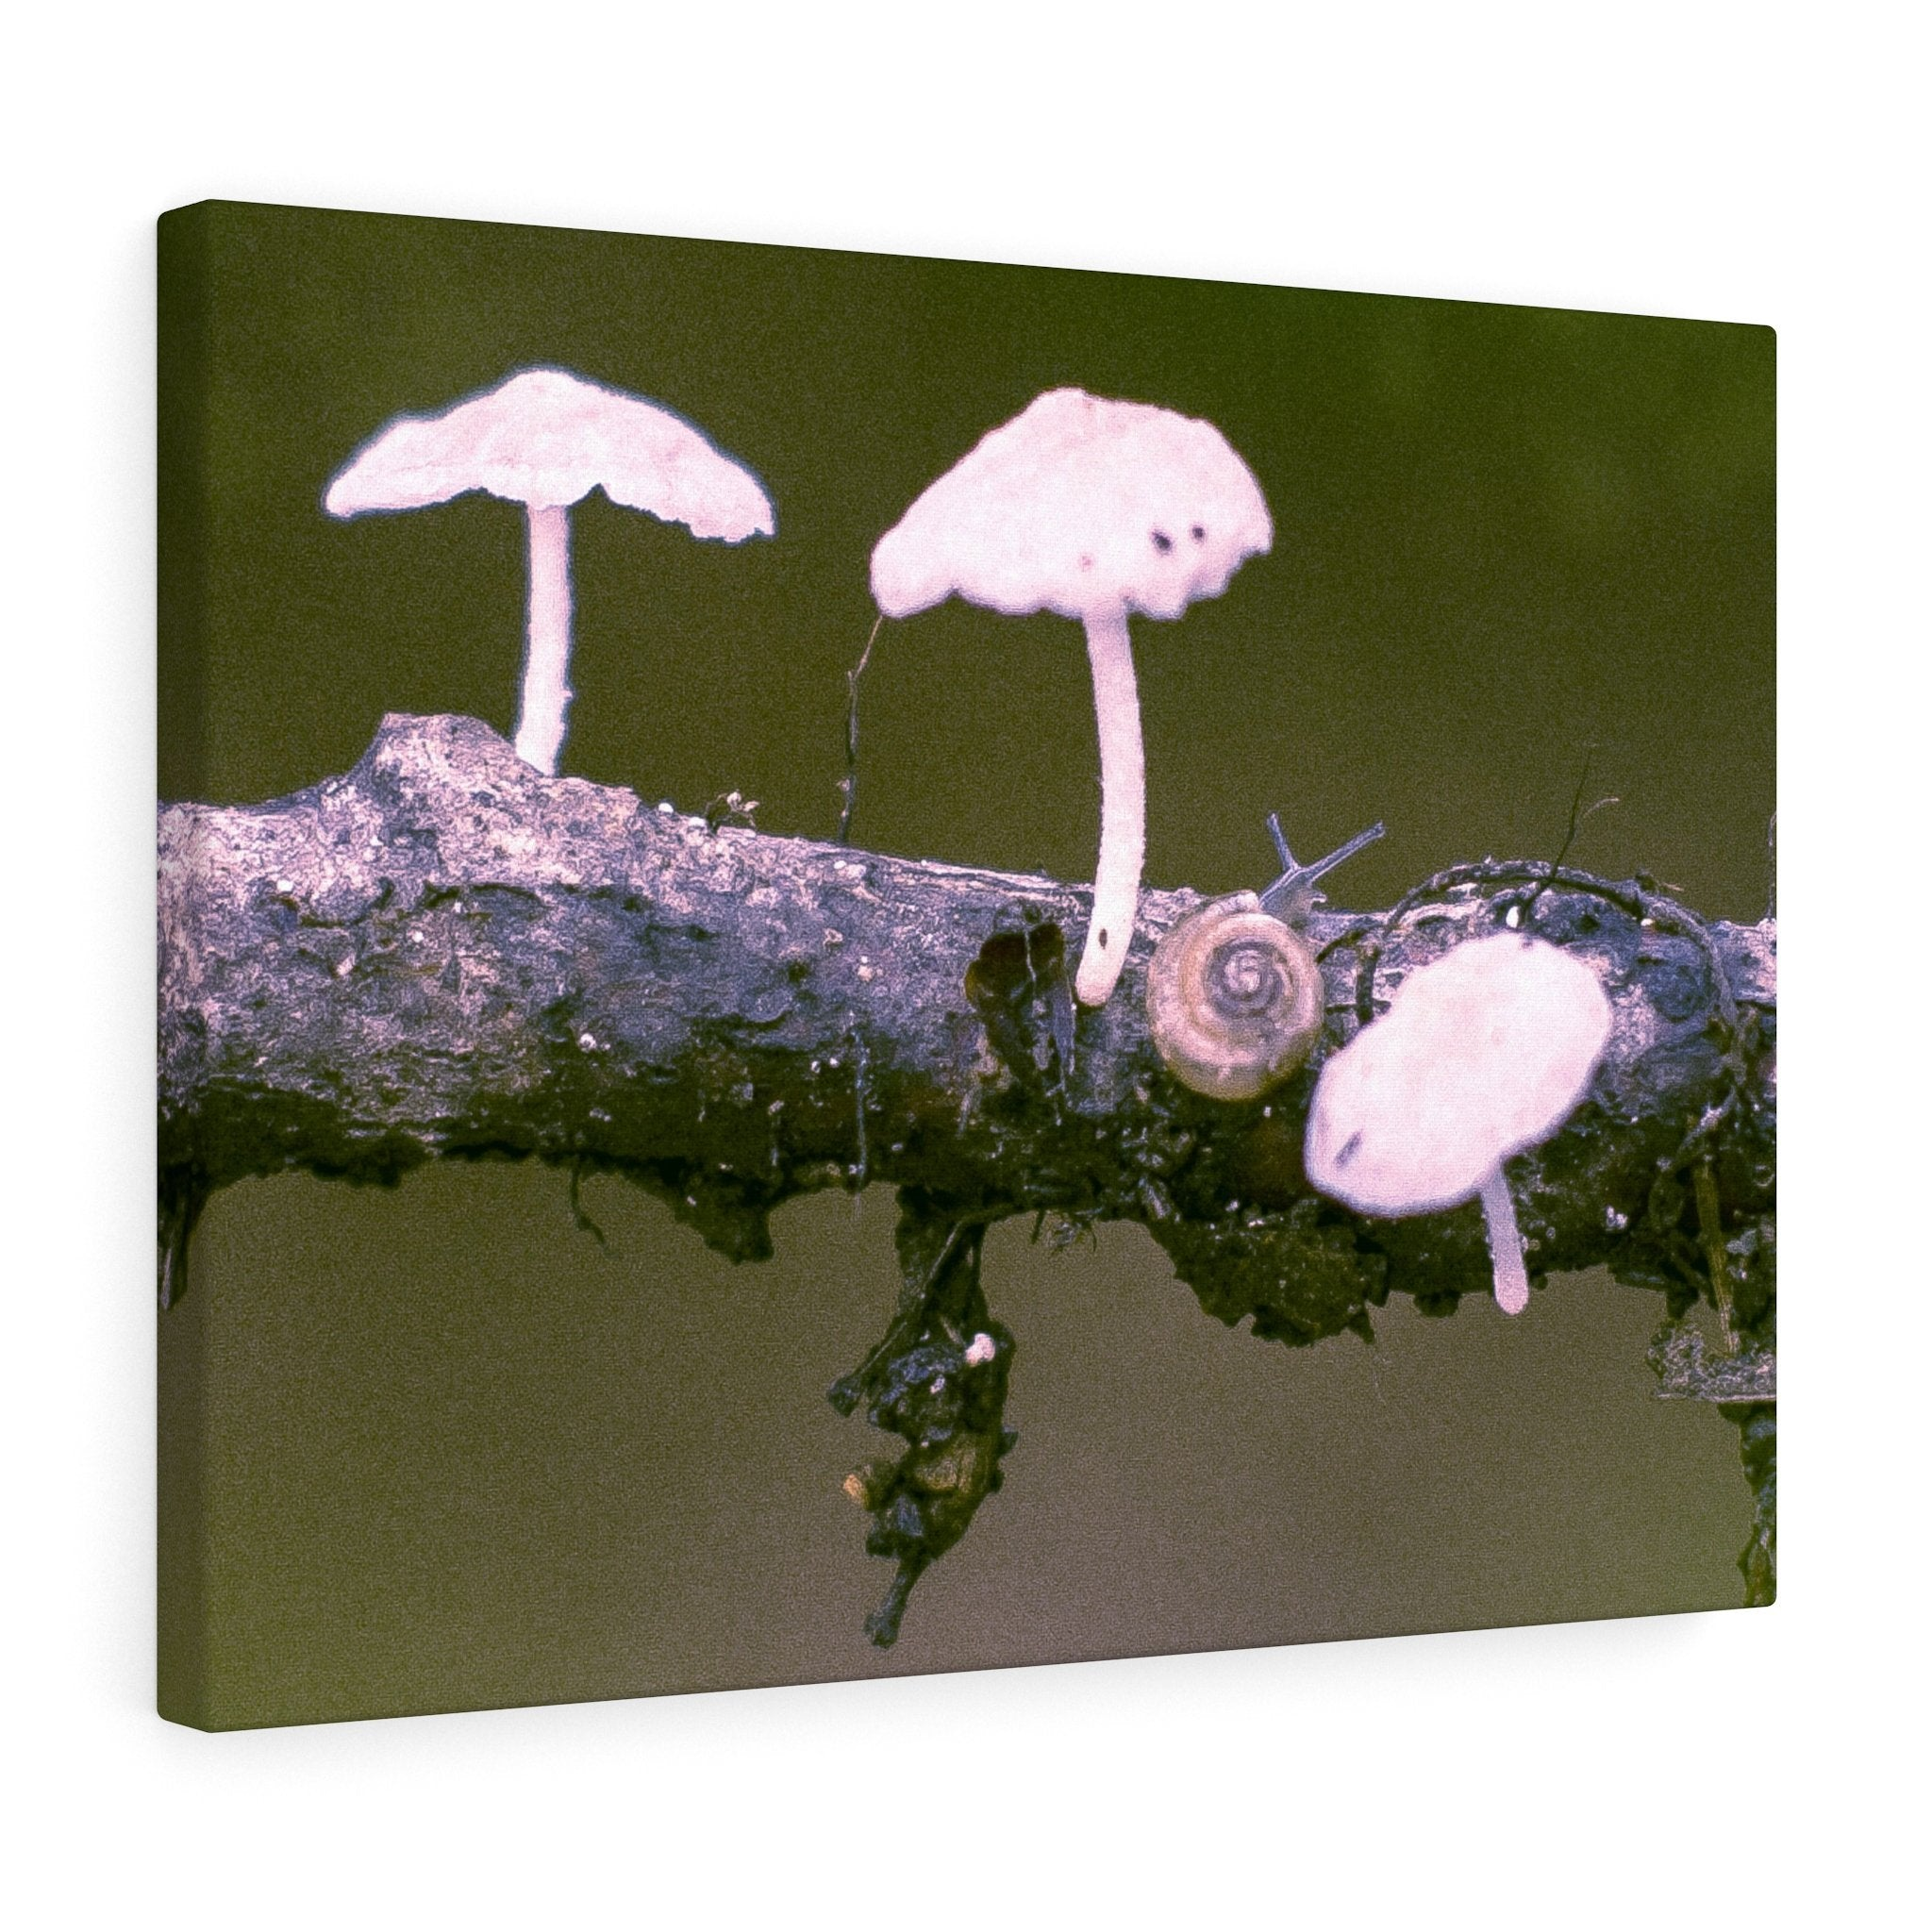 Snail on a Log Stretched canvas 24″ × 18″ / Stretched Canvas (1.5